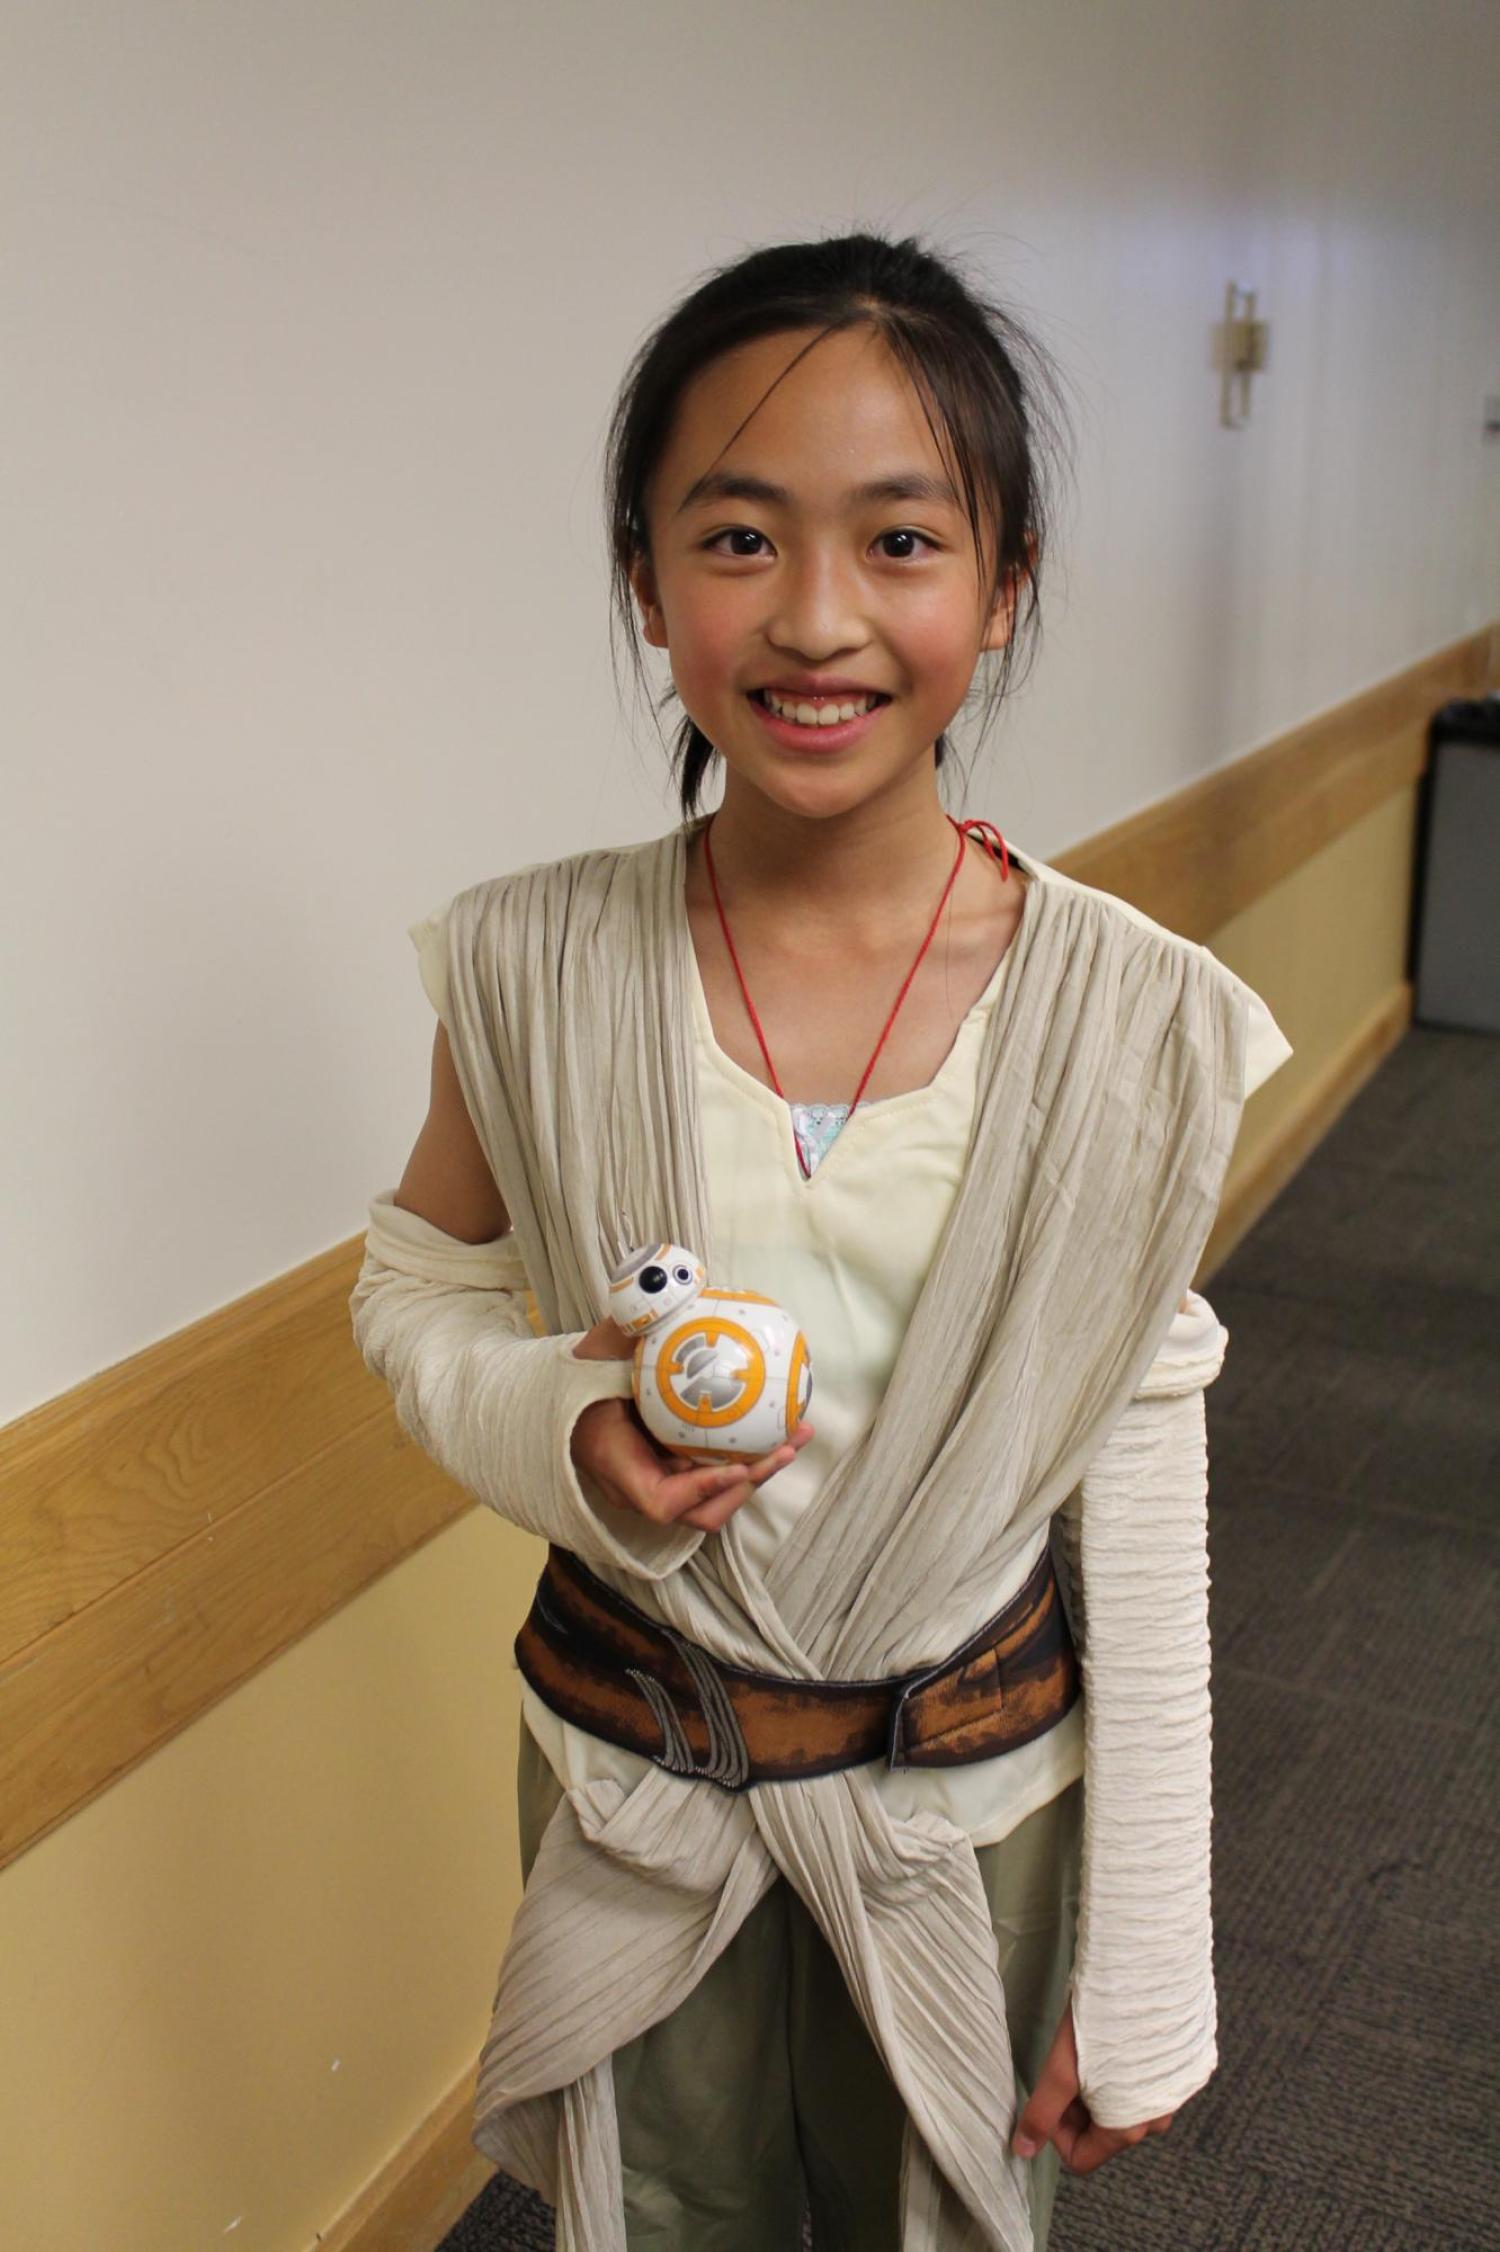 girl with BB8